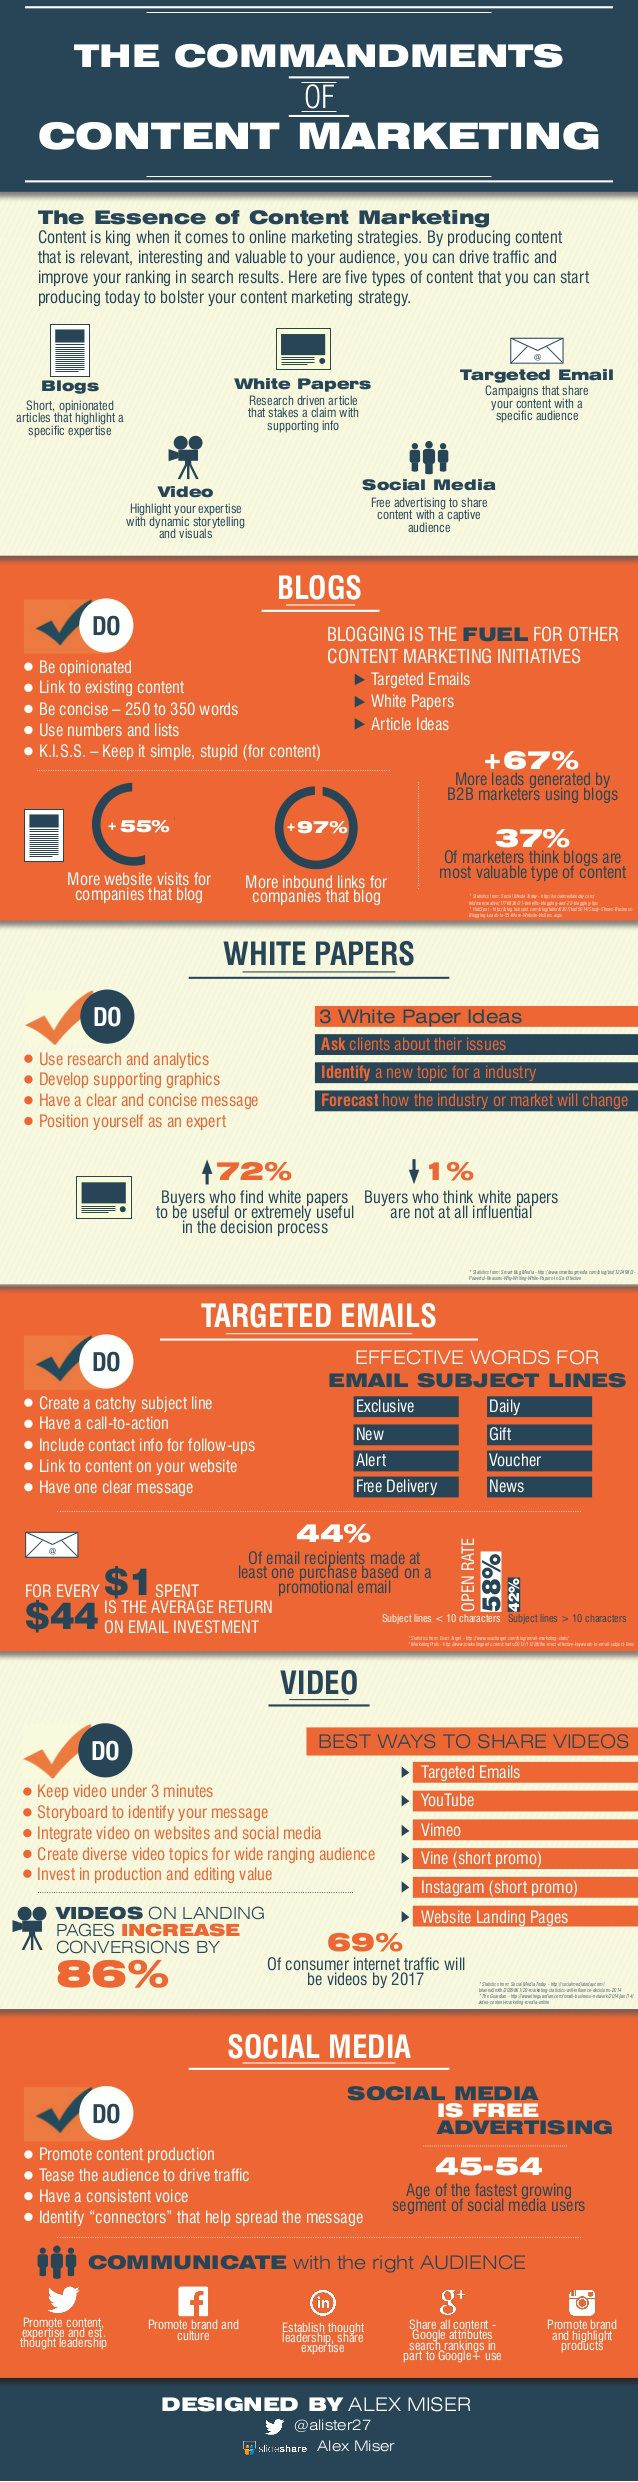 The commandments of #content marketing #infographic #marketing